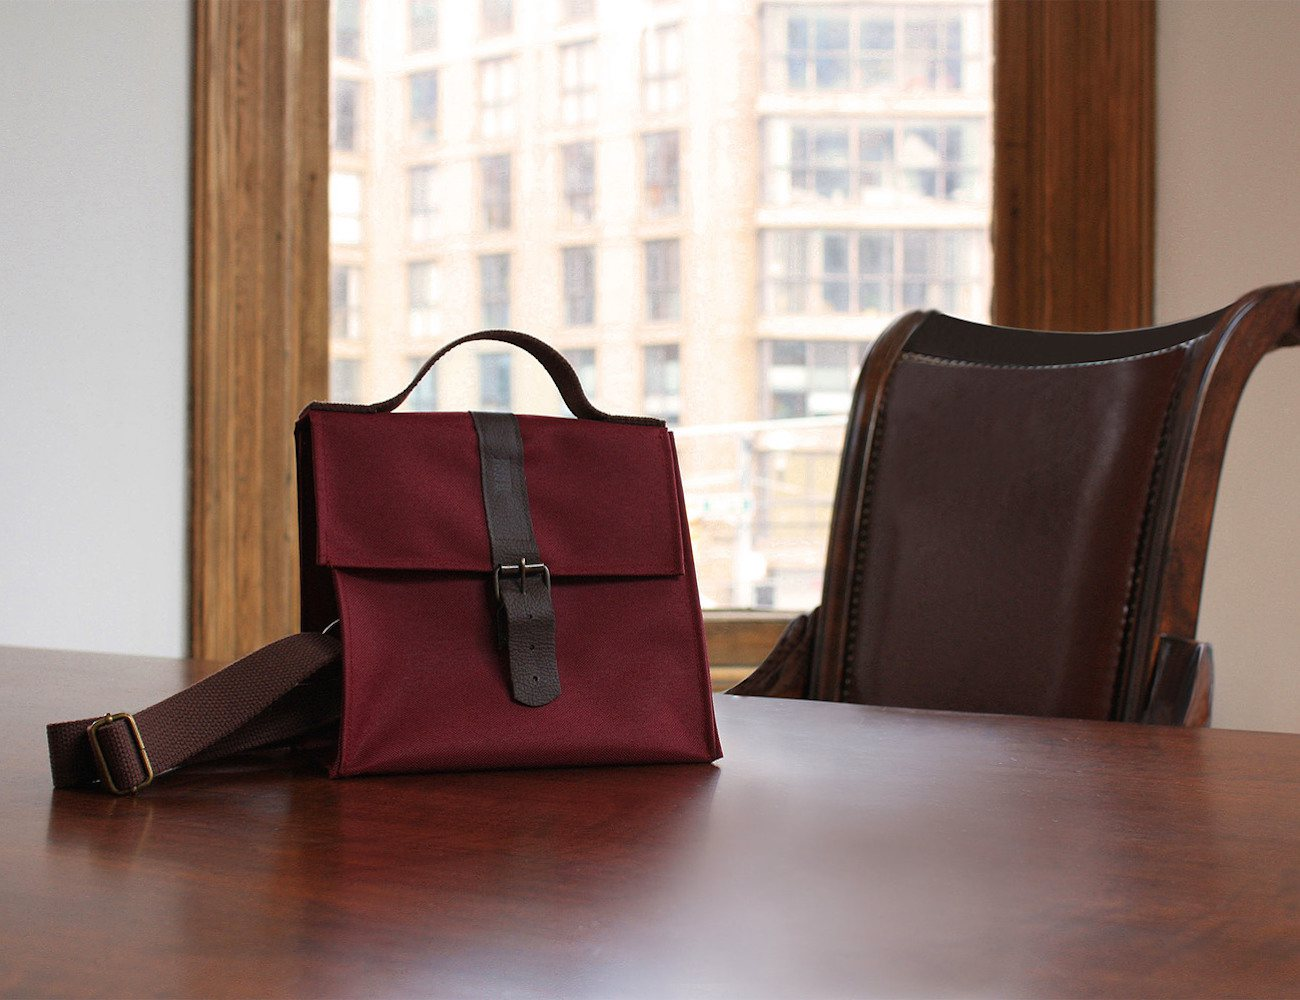 The+Colborne+Bag%3A+The+Design-Driven+Lunch+Bag